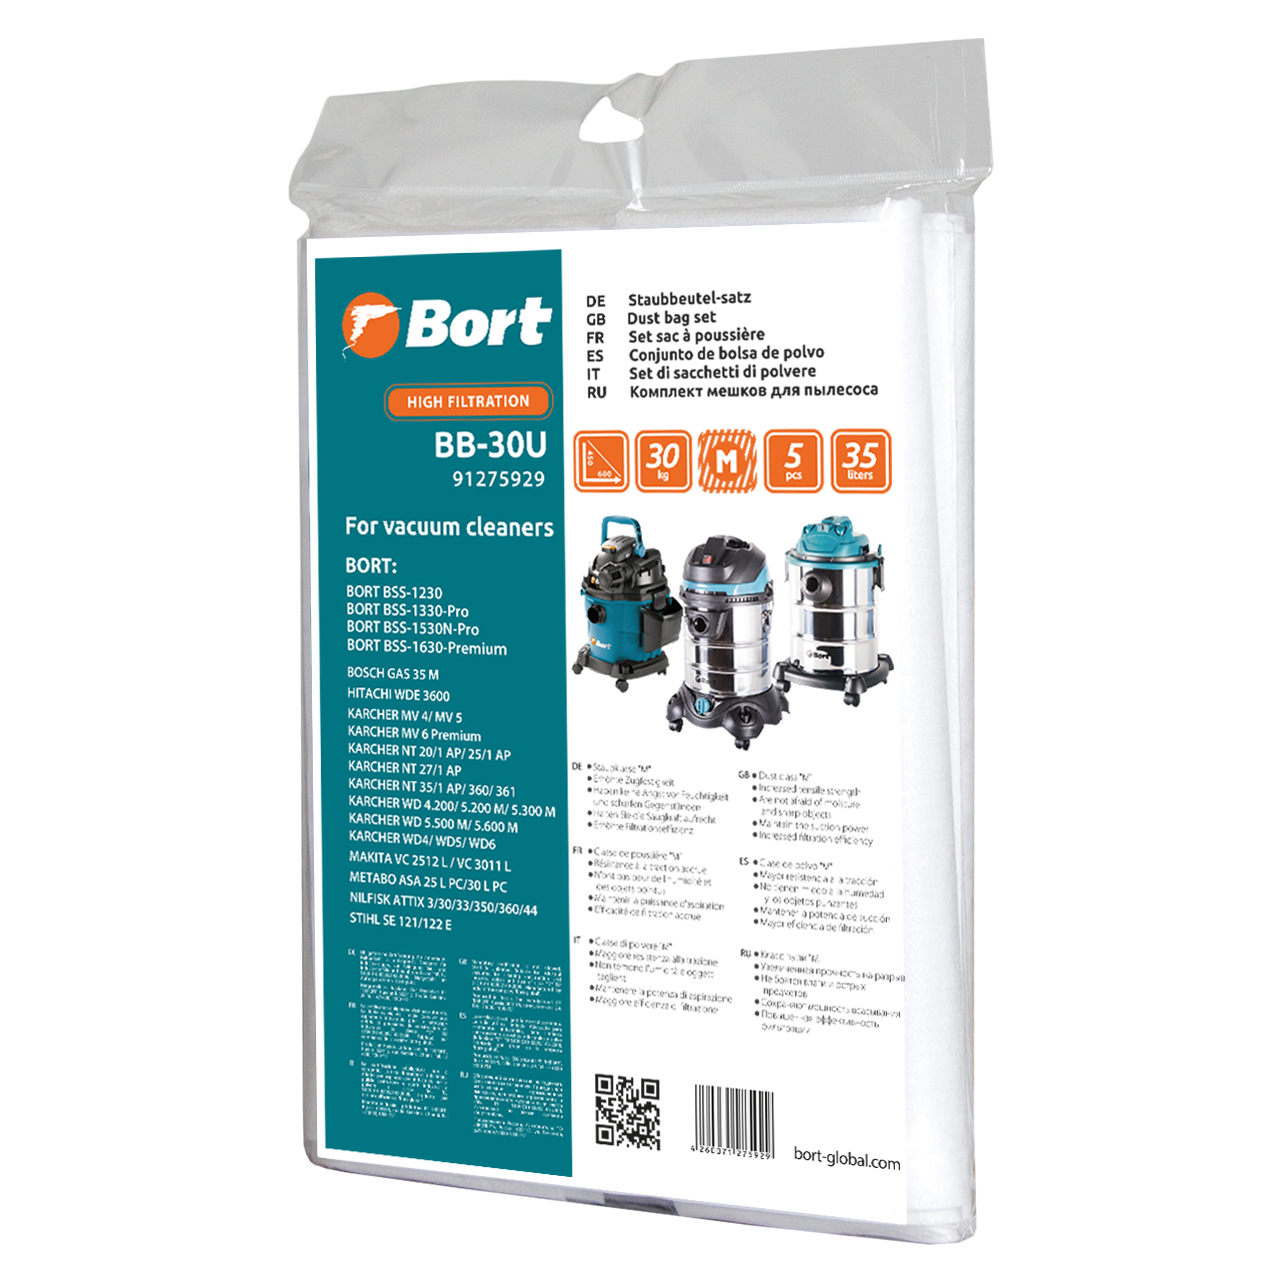 Kit bags пылесборных for vacuum cleaner Bort BB-30U (Volume 35 L, 5 pcs, BSS-1230; BSS-1330-Pro; BSS-1530N-Pro; BSS-1630-Pre цена и фото